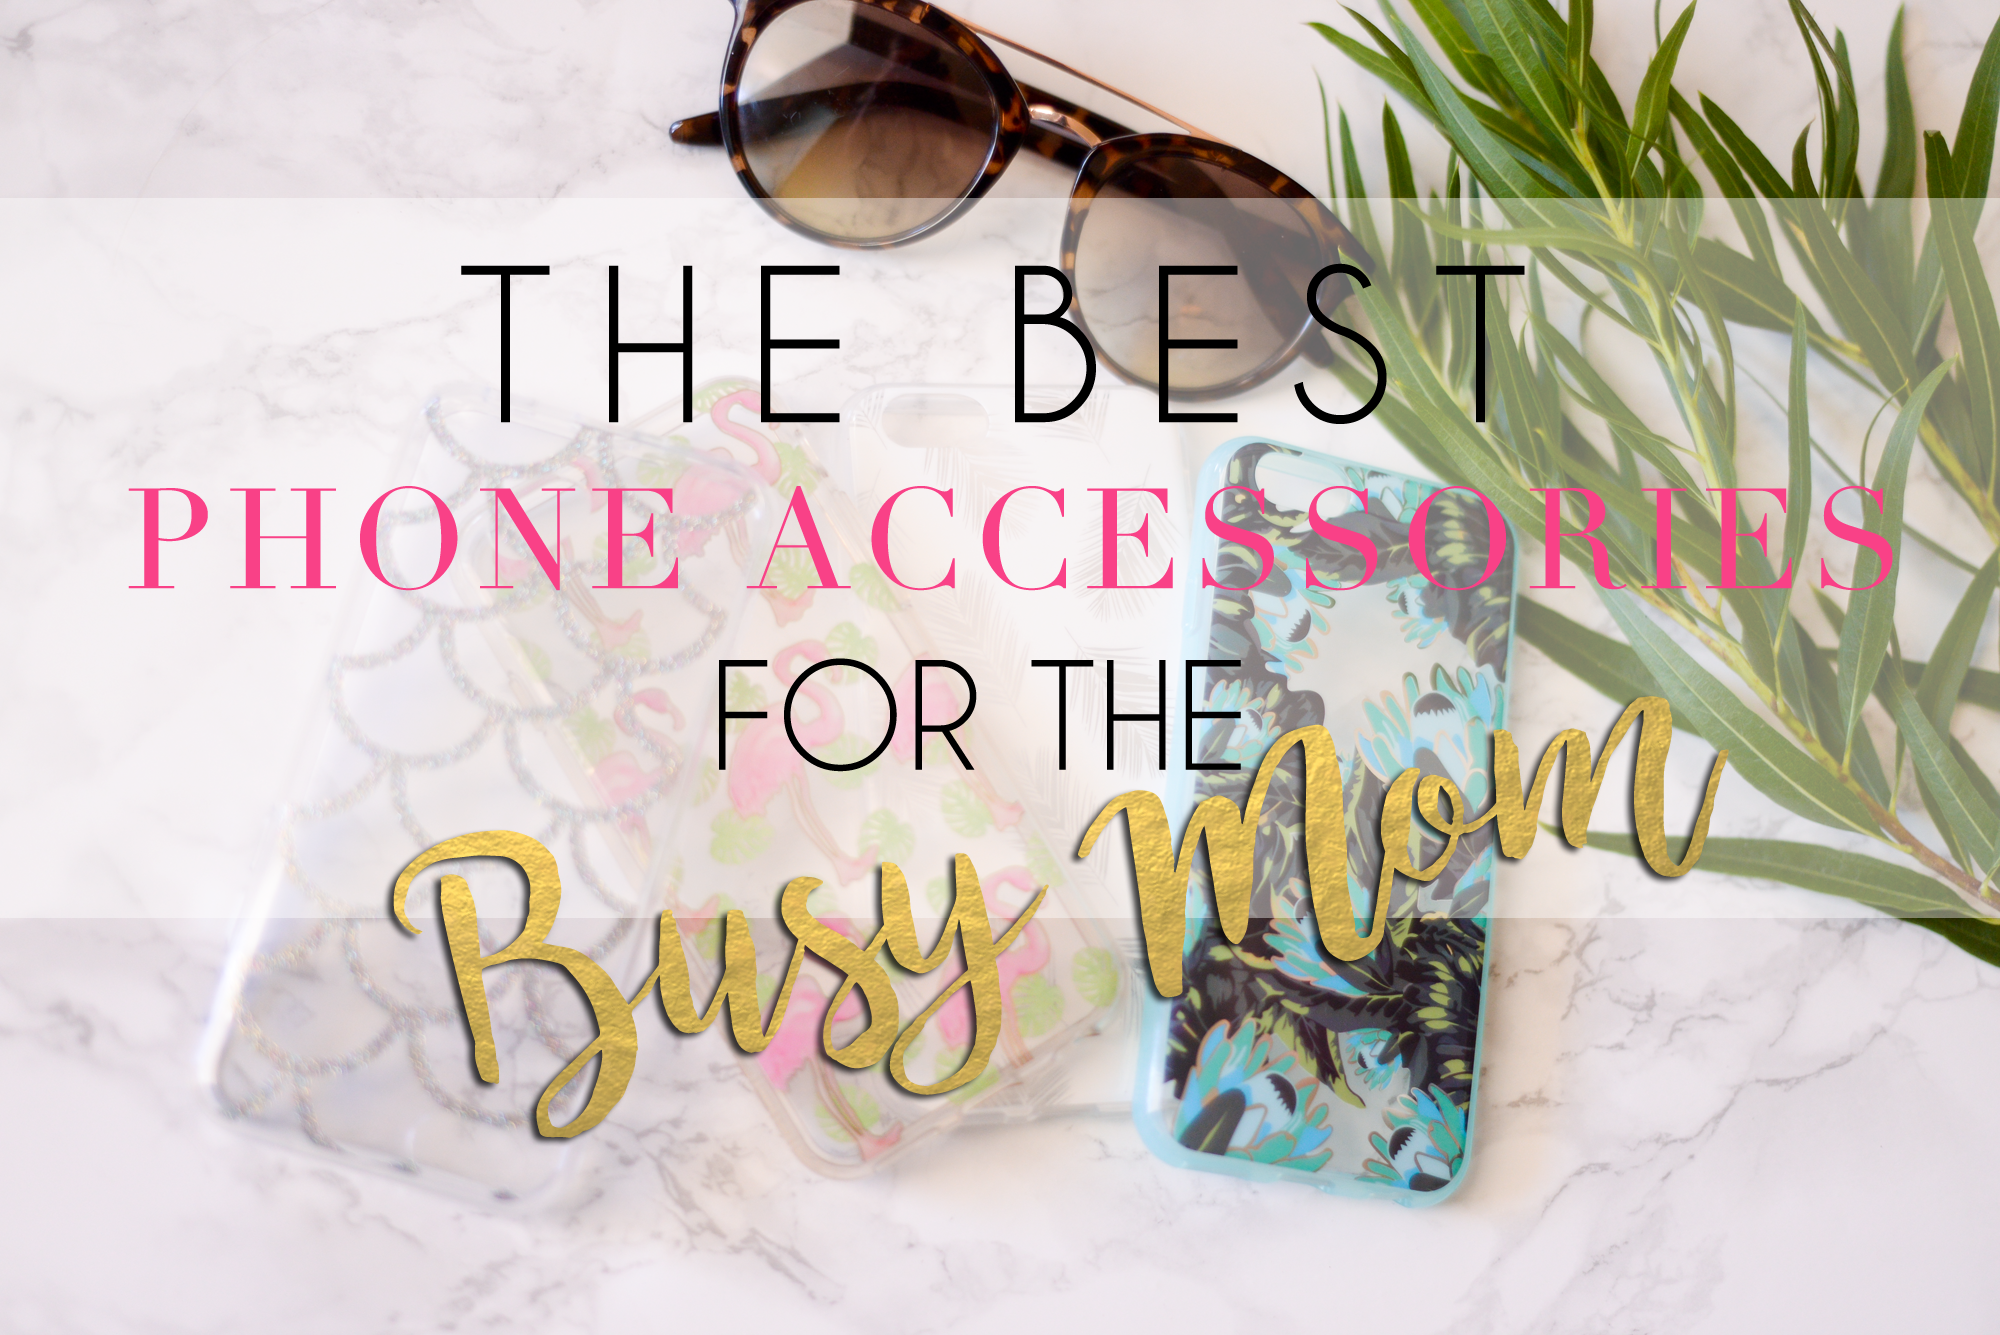 THE BEST PHONE ACCESSORIES FOR THE BUSY MAMA